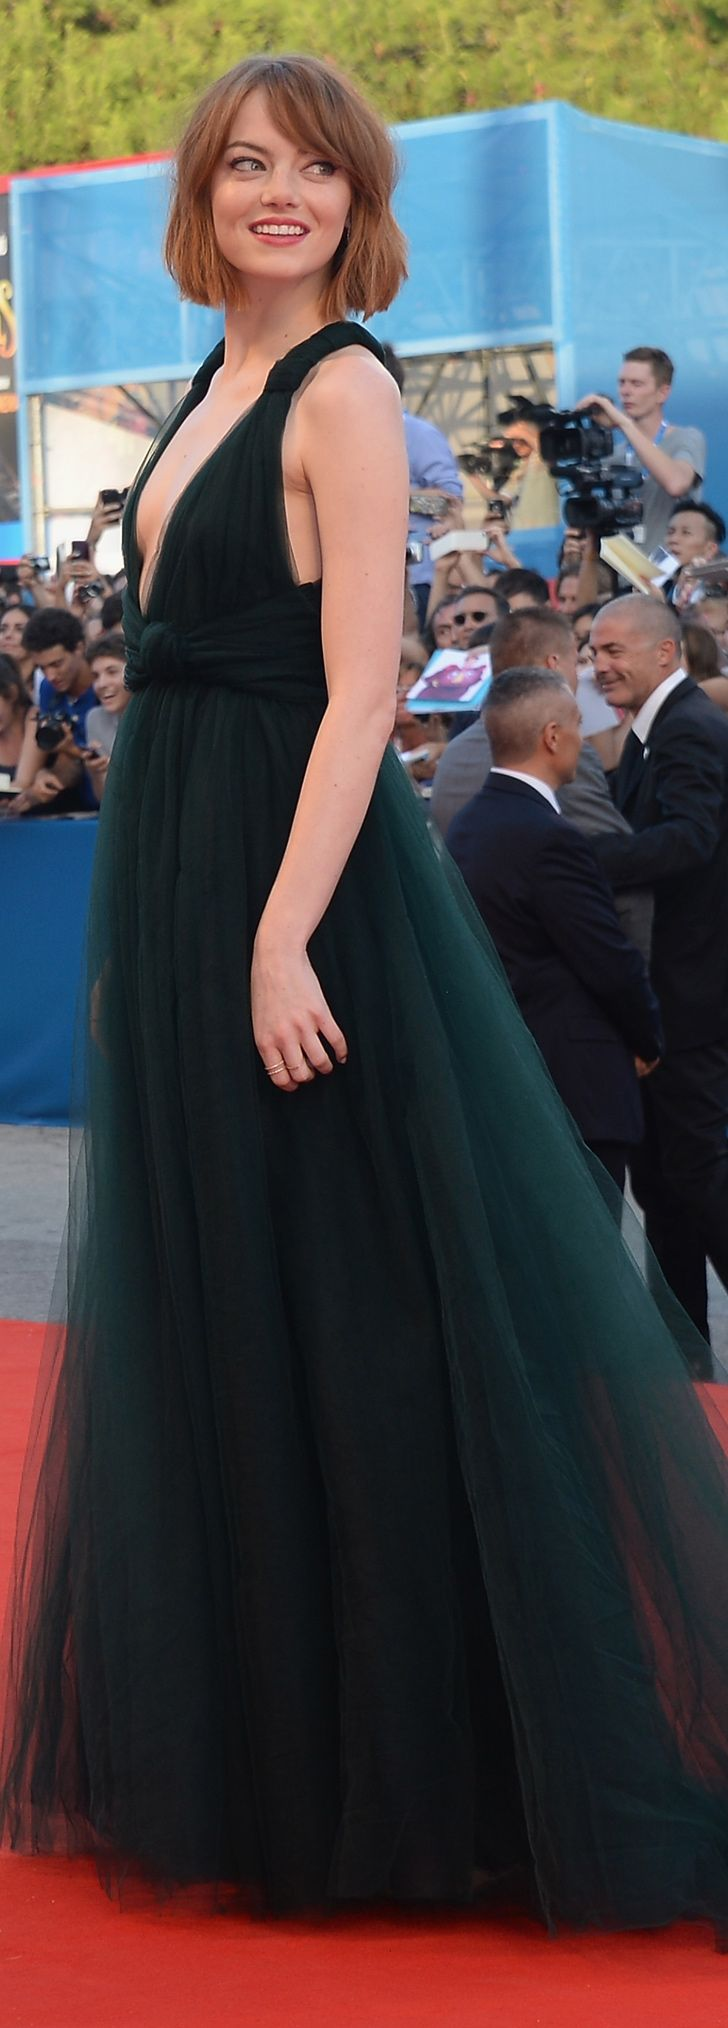 Emma Stone in Valentino at the Venice Film Festival premiere of Birdman.